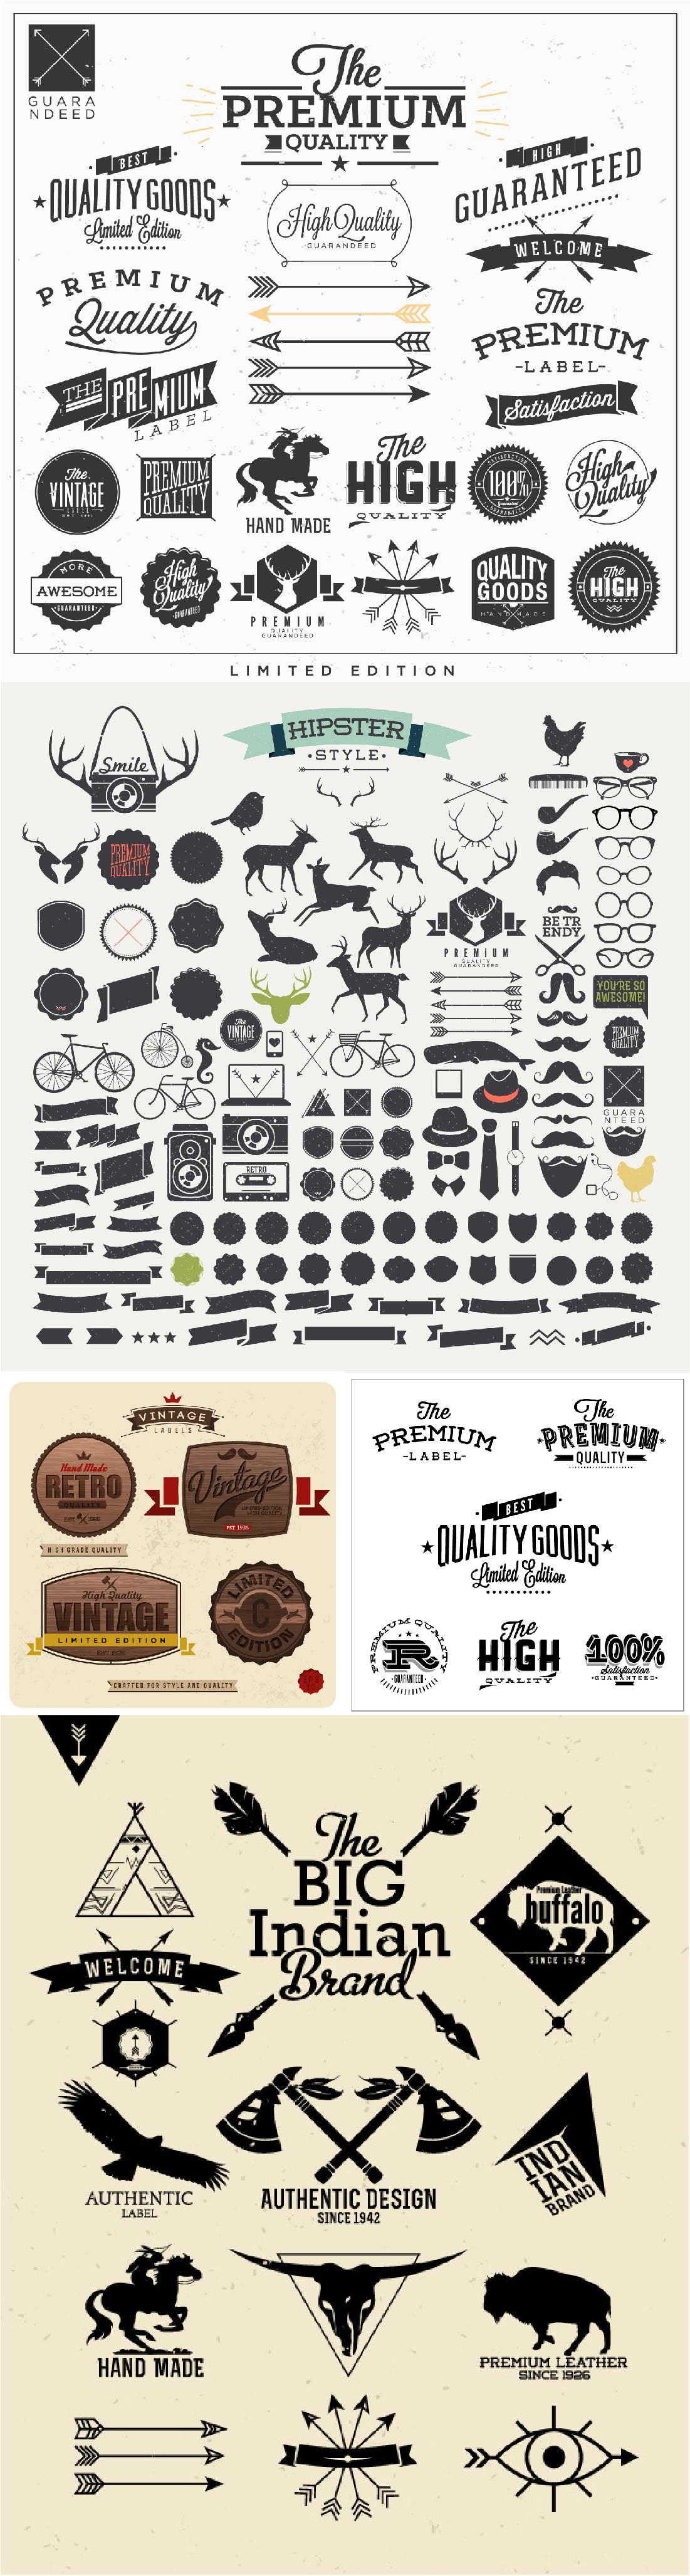 500+ Premium Vectors Collection 22